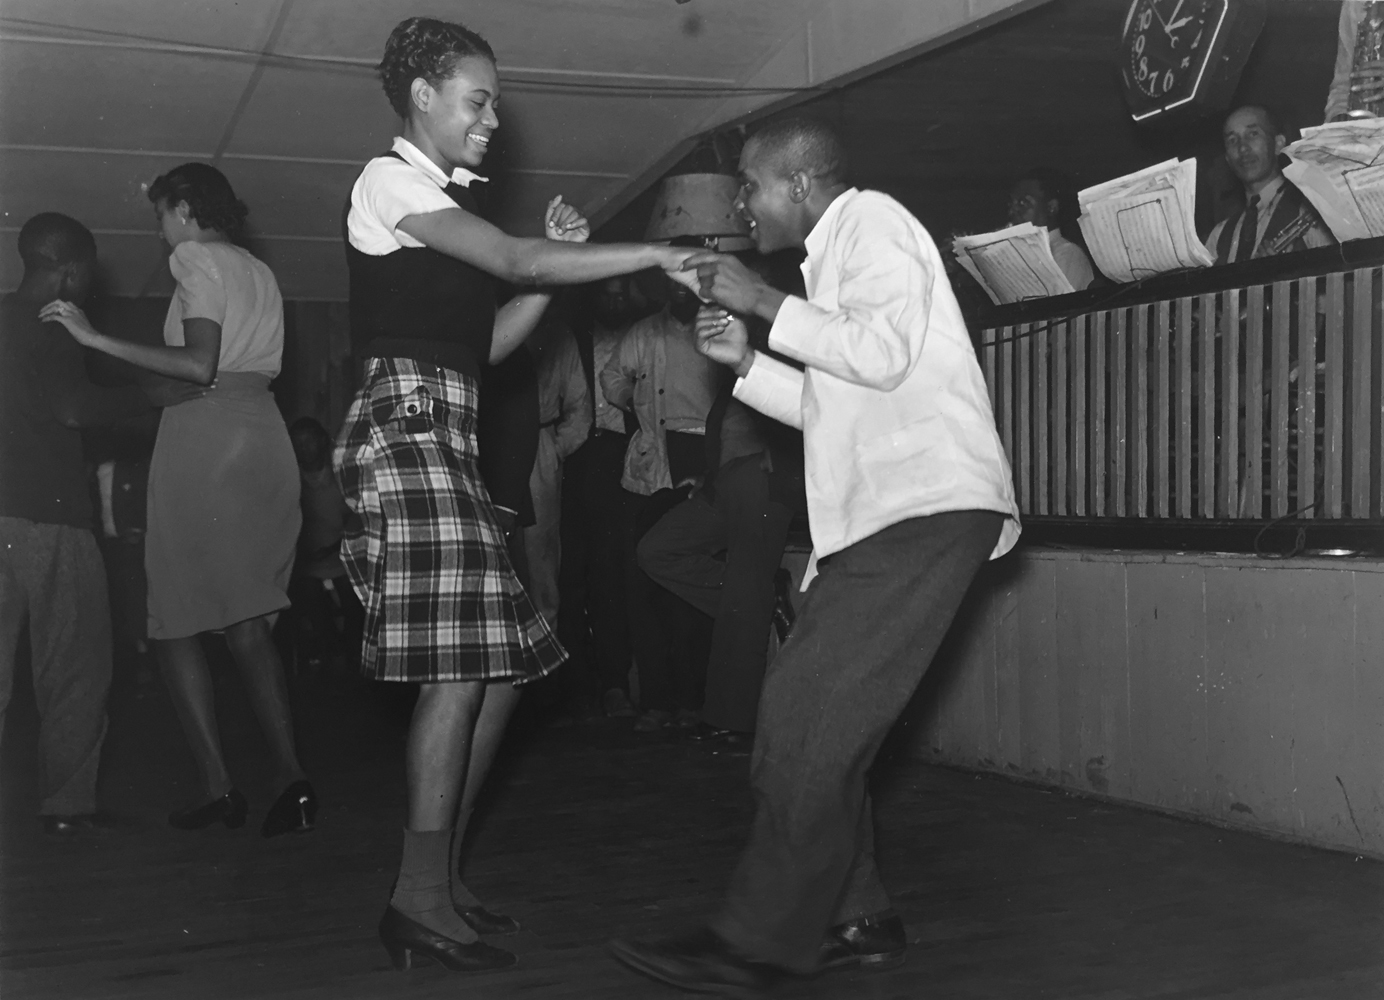 Marion Post Wolcott, Couple Jitterbugging in juke joint, Memphis, Tennessee, 1939, gelatin silver print, 11 x 14 inches, signed by artist, $3000.